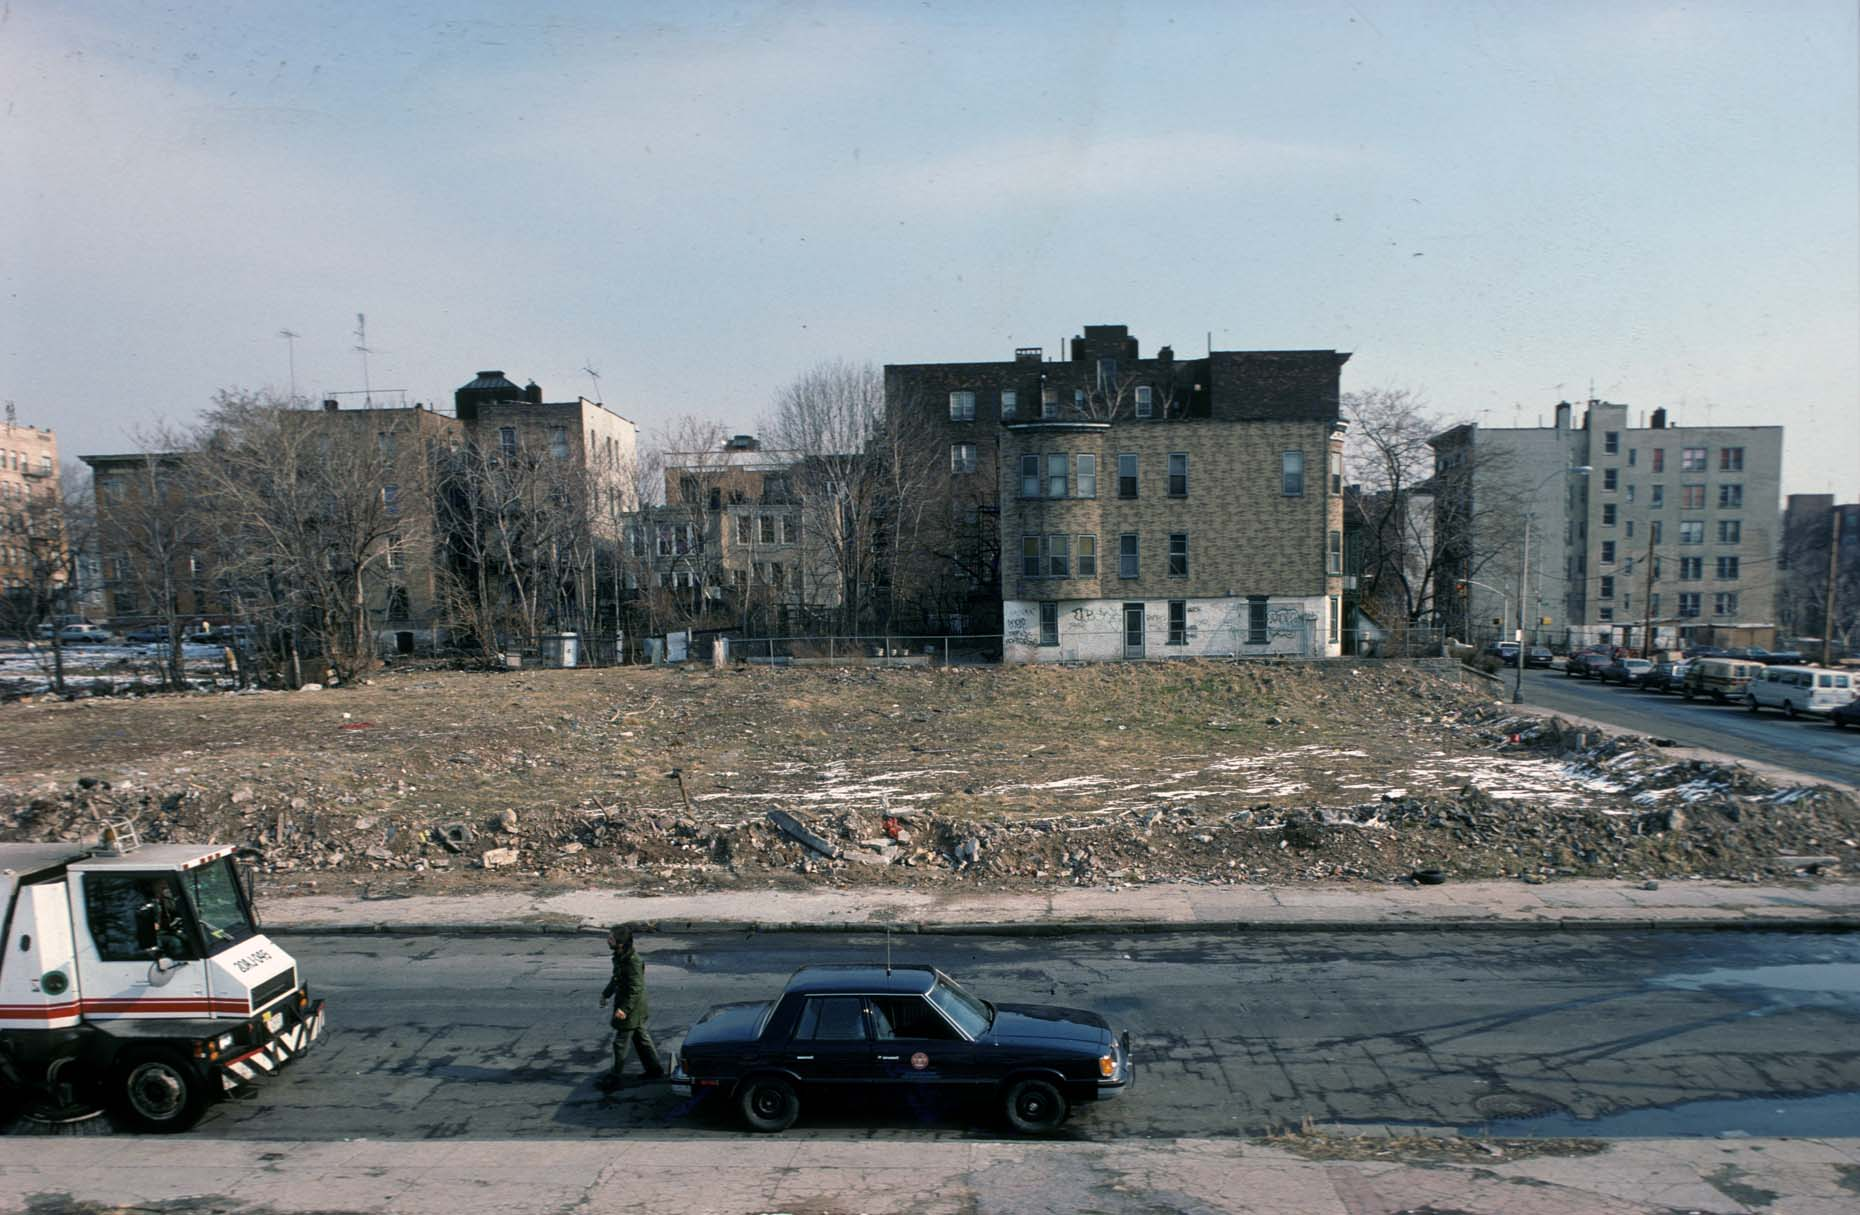 06_Vyse Ave at 178th St, S Bronx March 1988_-DUP2.jpg